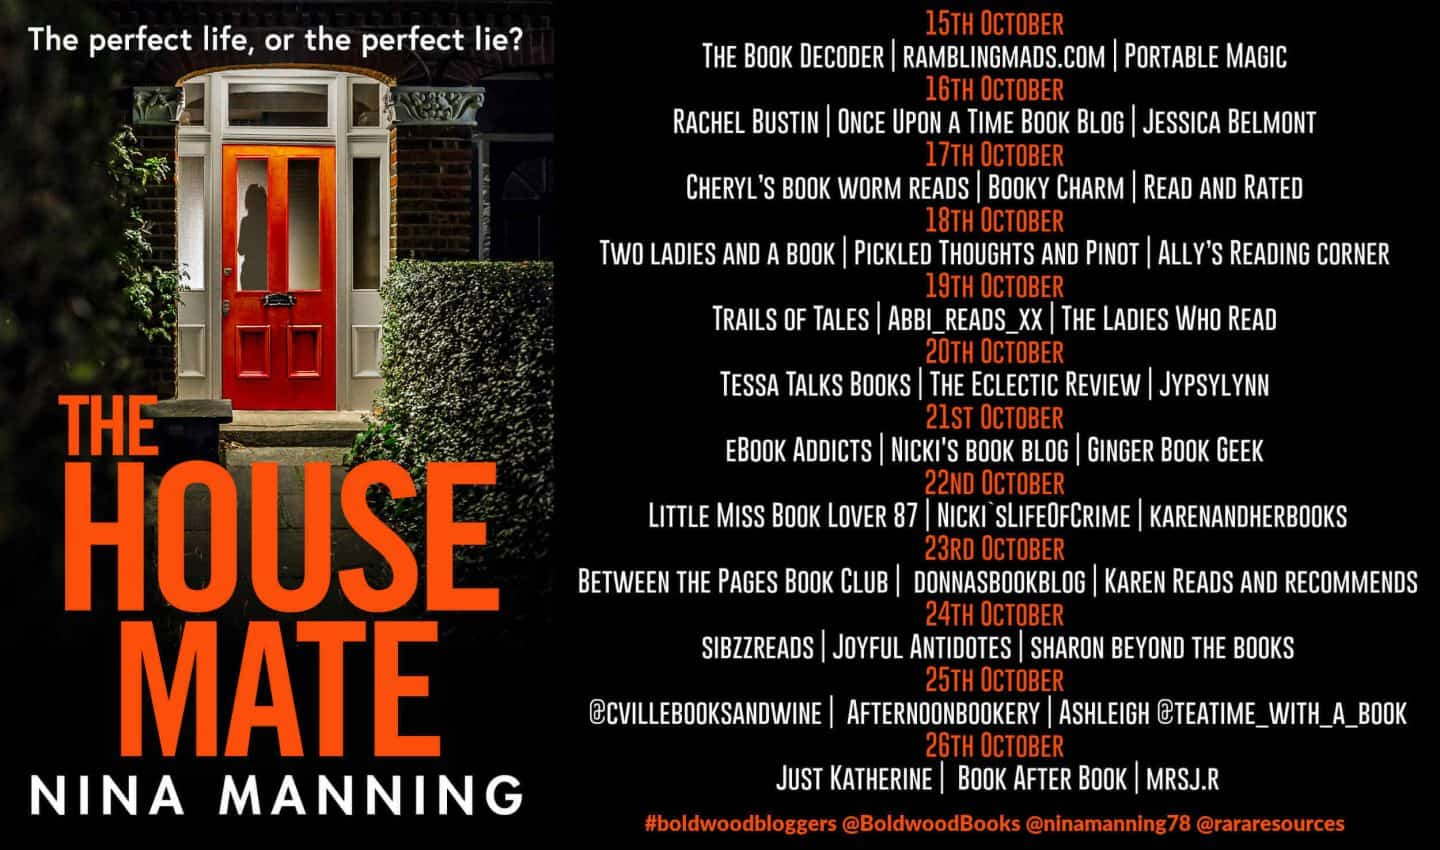 The House Mate Blog Tour